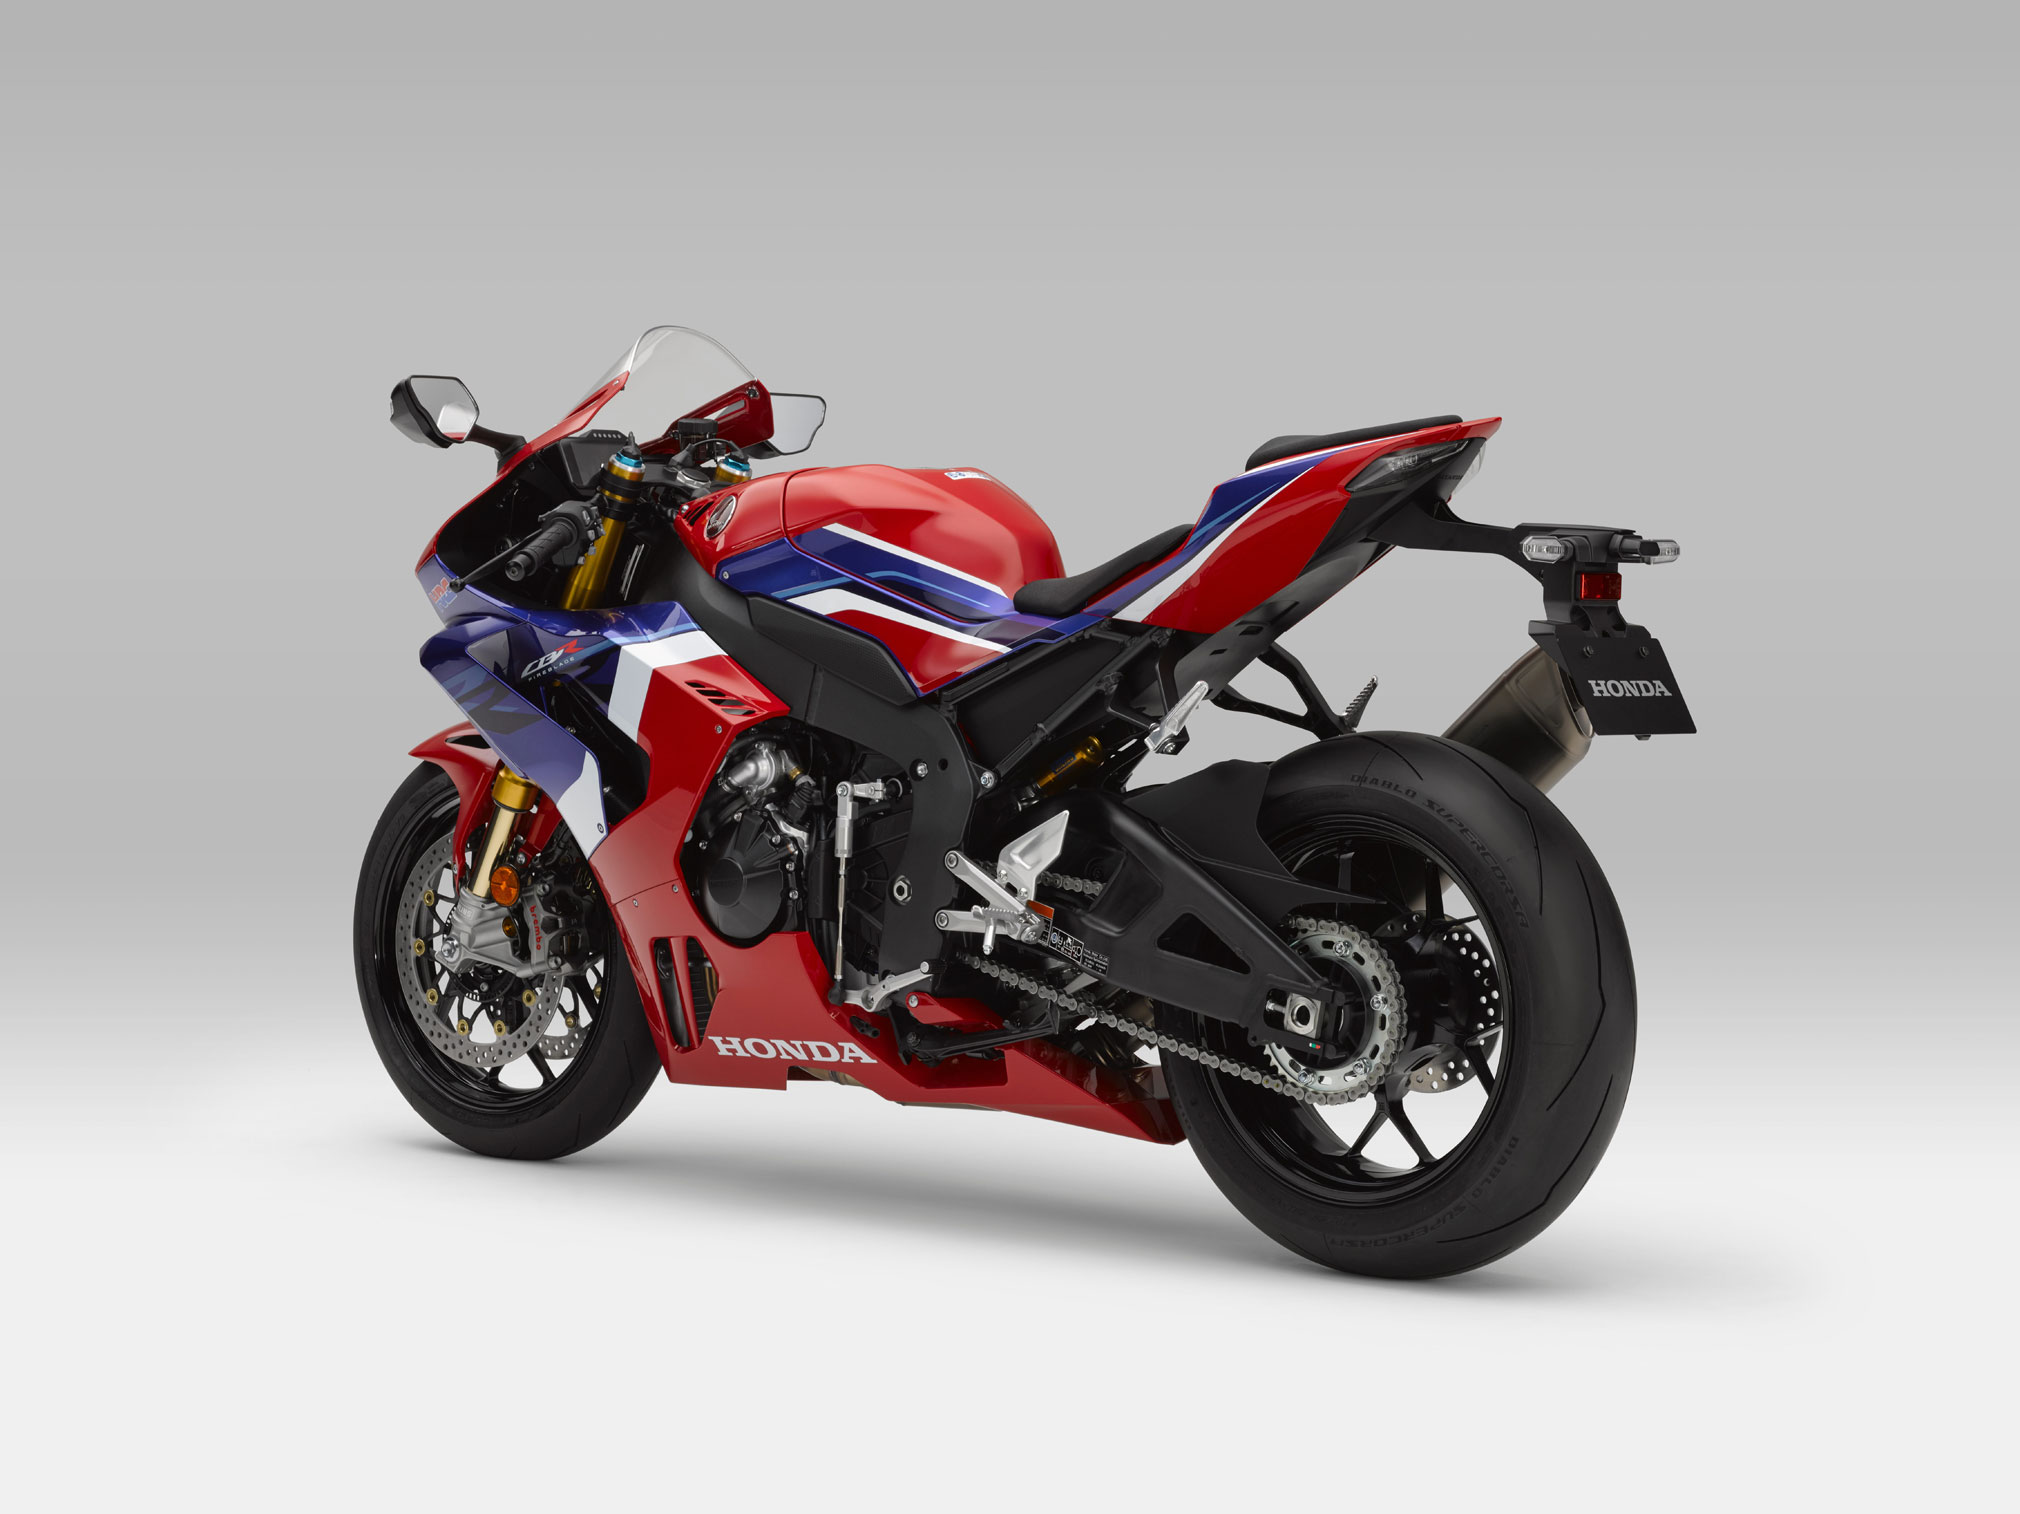 2021 honda cbr1000rrr fireblade sp guide • total motorcycle